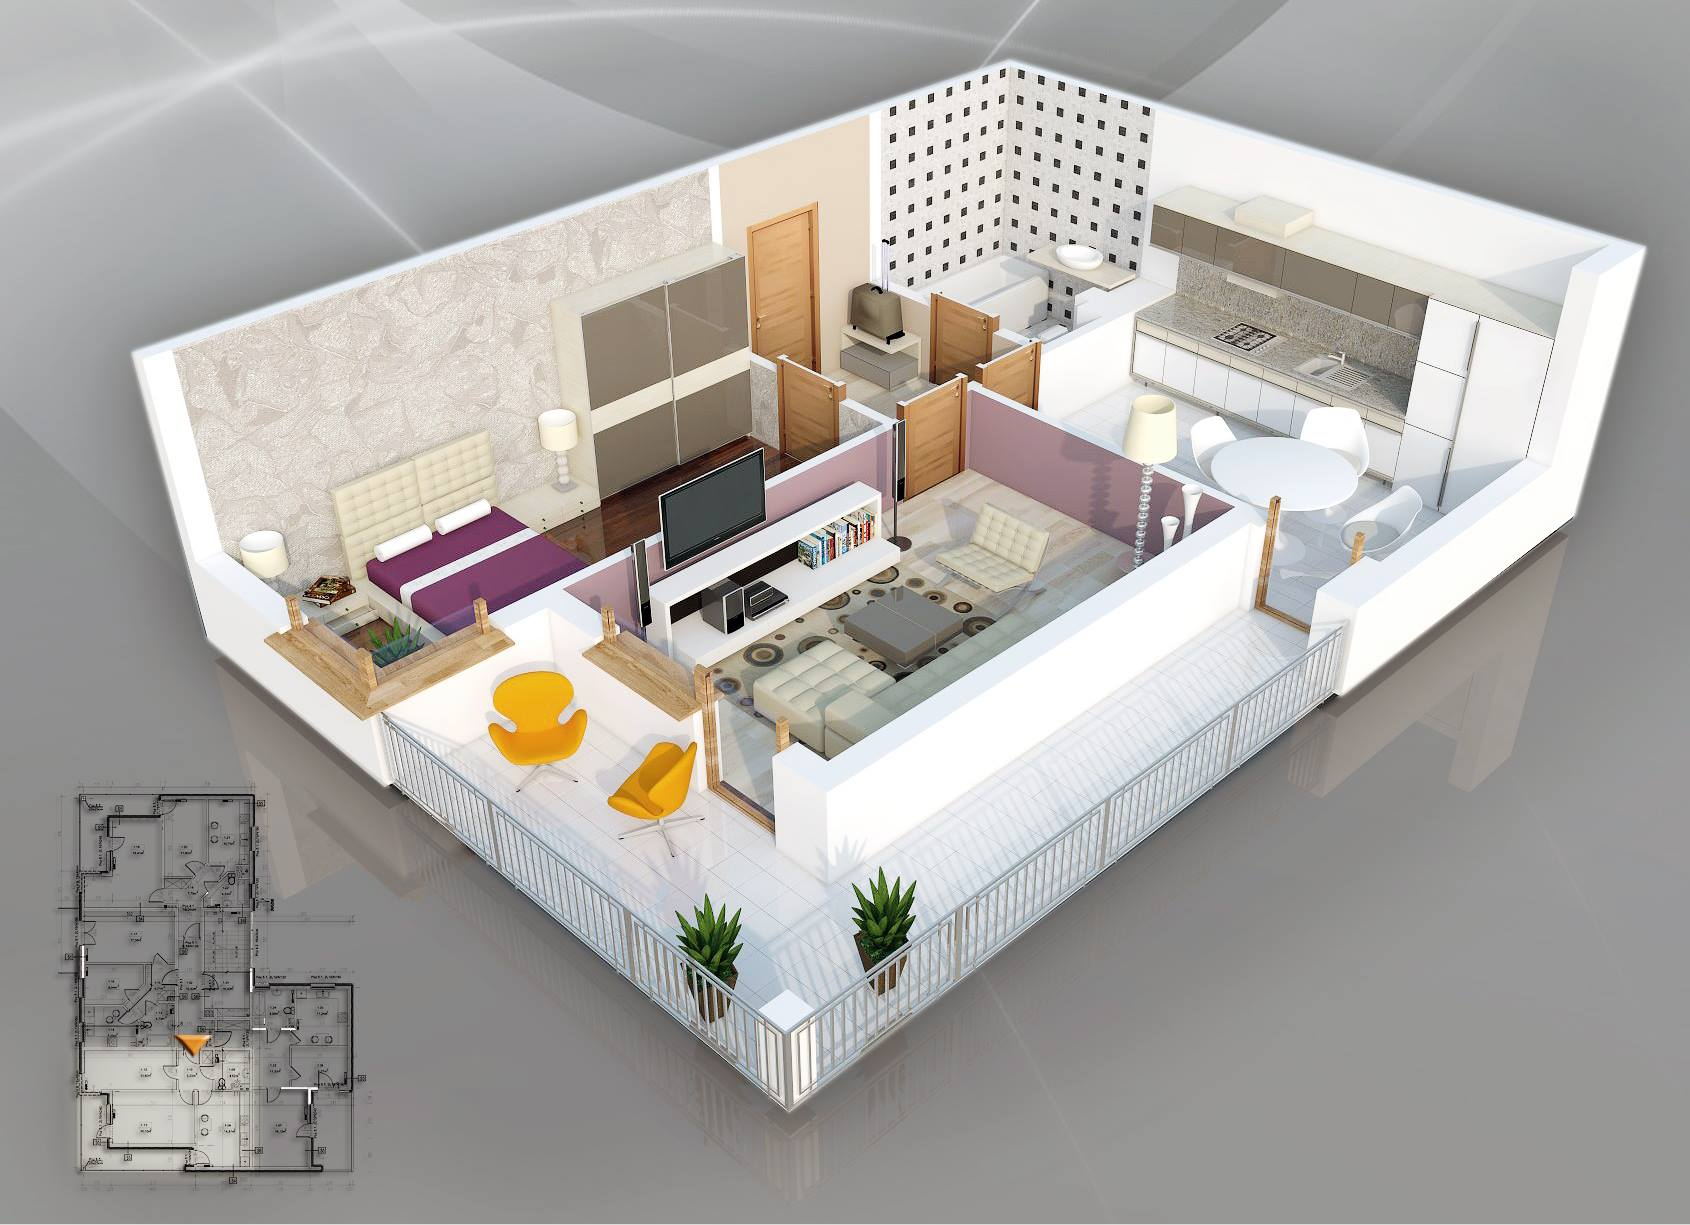 One bedroom house plan interior design ideas for 1 bedroom design ideas